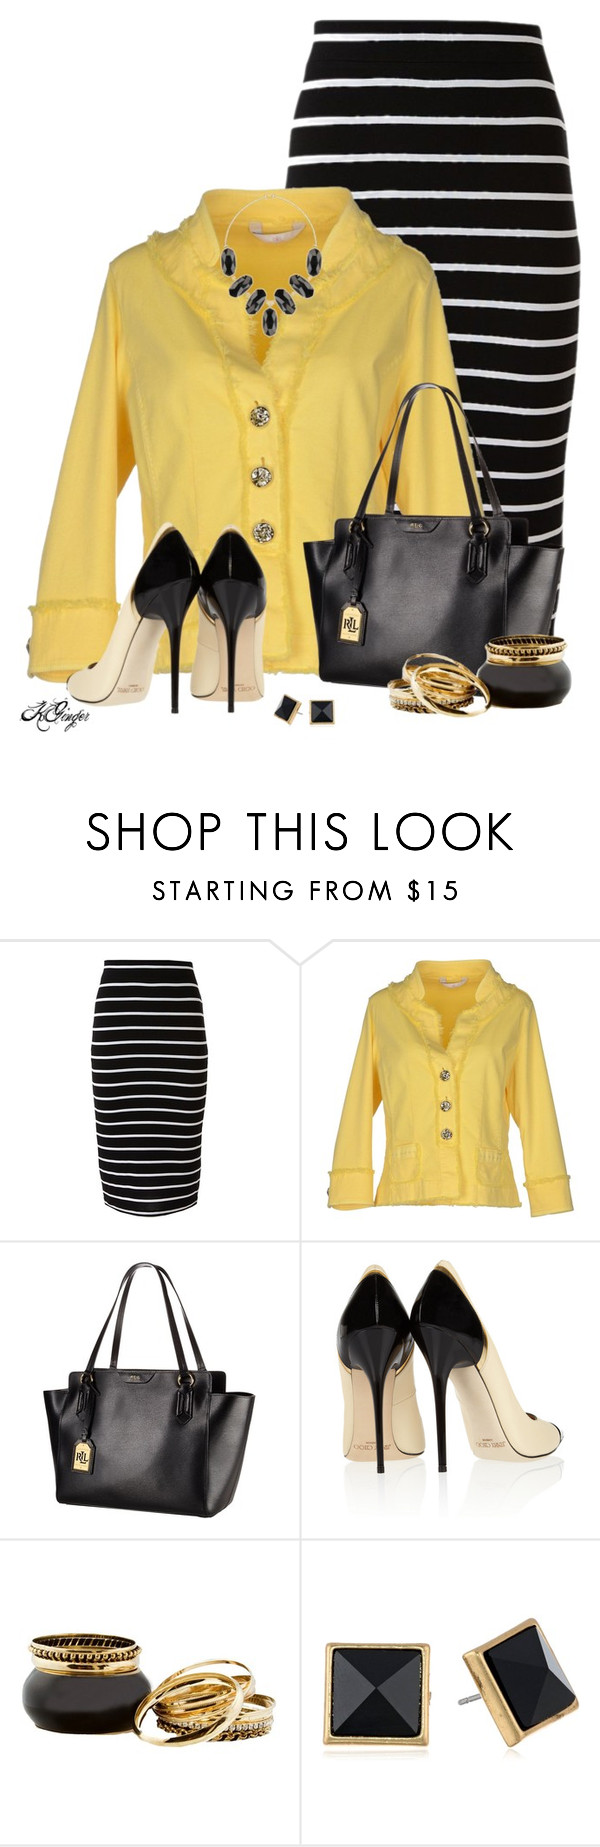 """""""Buzz buzz buzz like a bumble bee"""" by kginger ❤ liked on Polyvore featuring Dismero, Lauren Ralph Lauren, Jimmy Choo, Lucky Brand and Kendra Scott"""